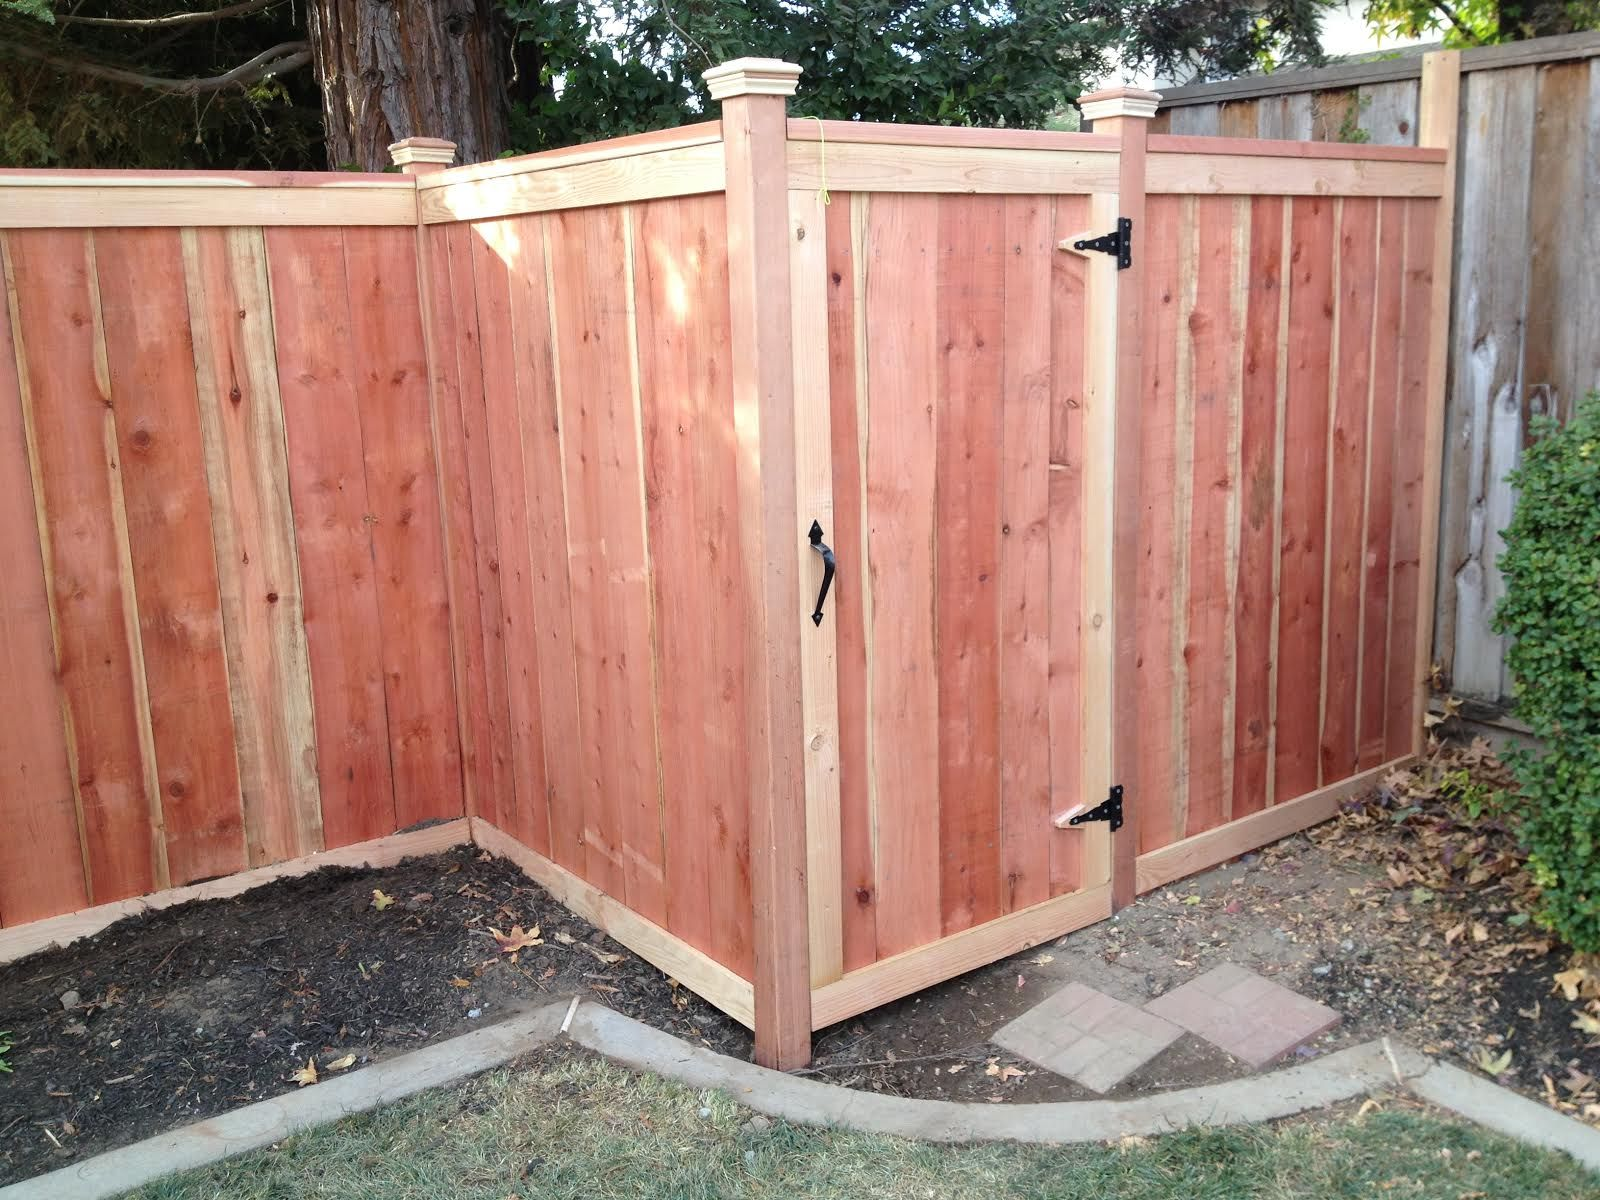 What could be behind this gate? A. Yard tools B. Garden supplies C ...